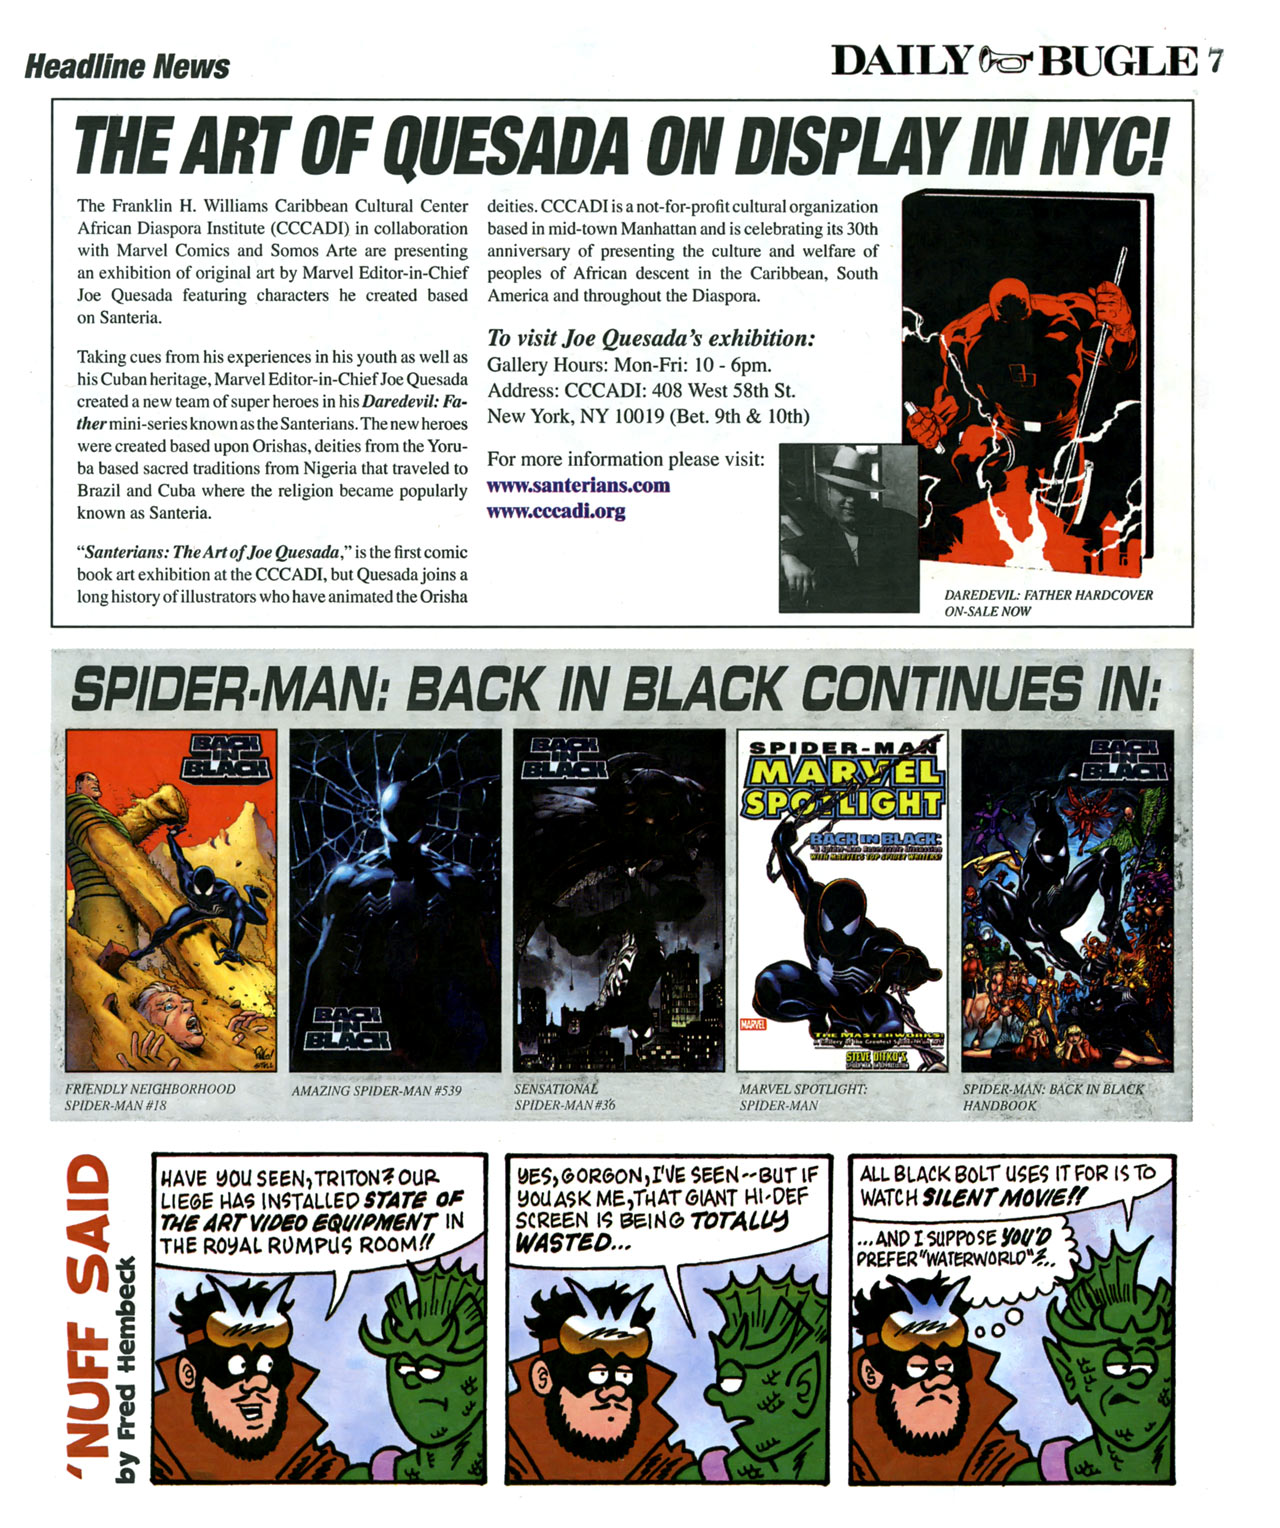 Read online Daily Bugle (2006) comic -  Issue #6 - 8